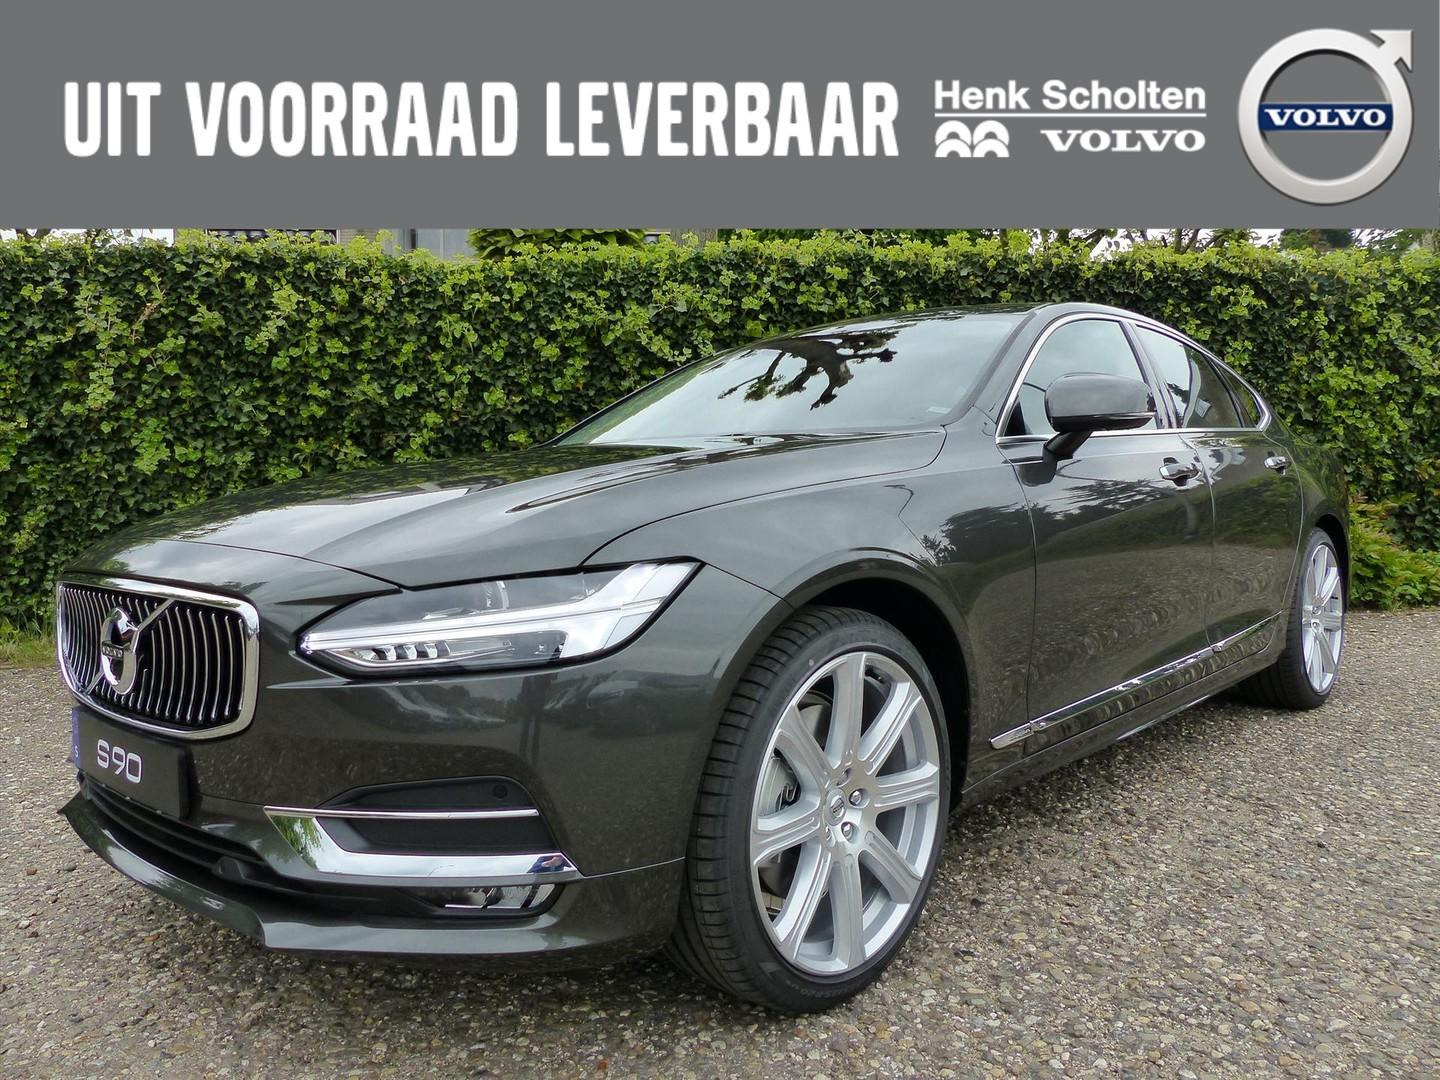 Volvo S90 T4 190pk gt inscription, business luxury plus, 20